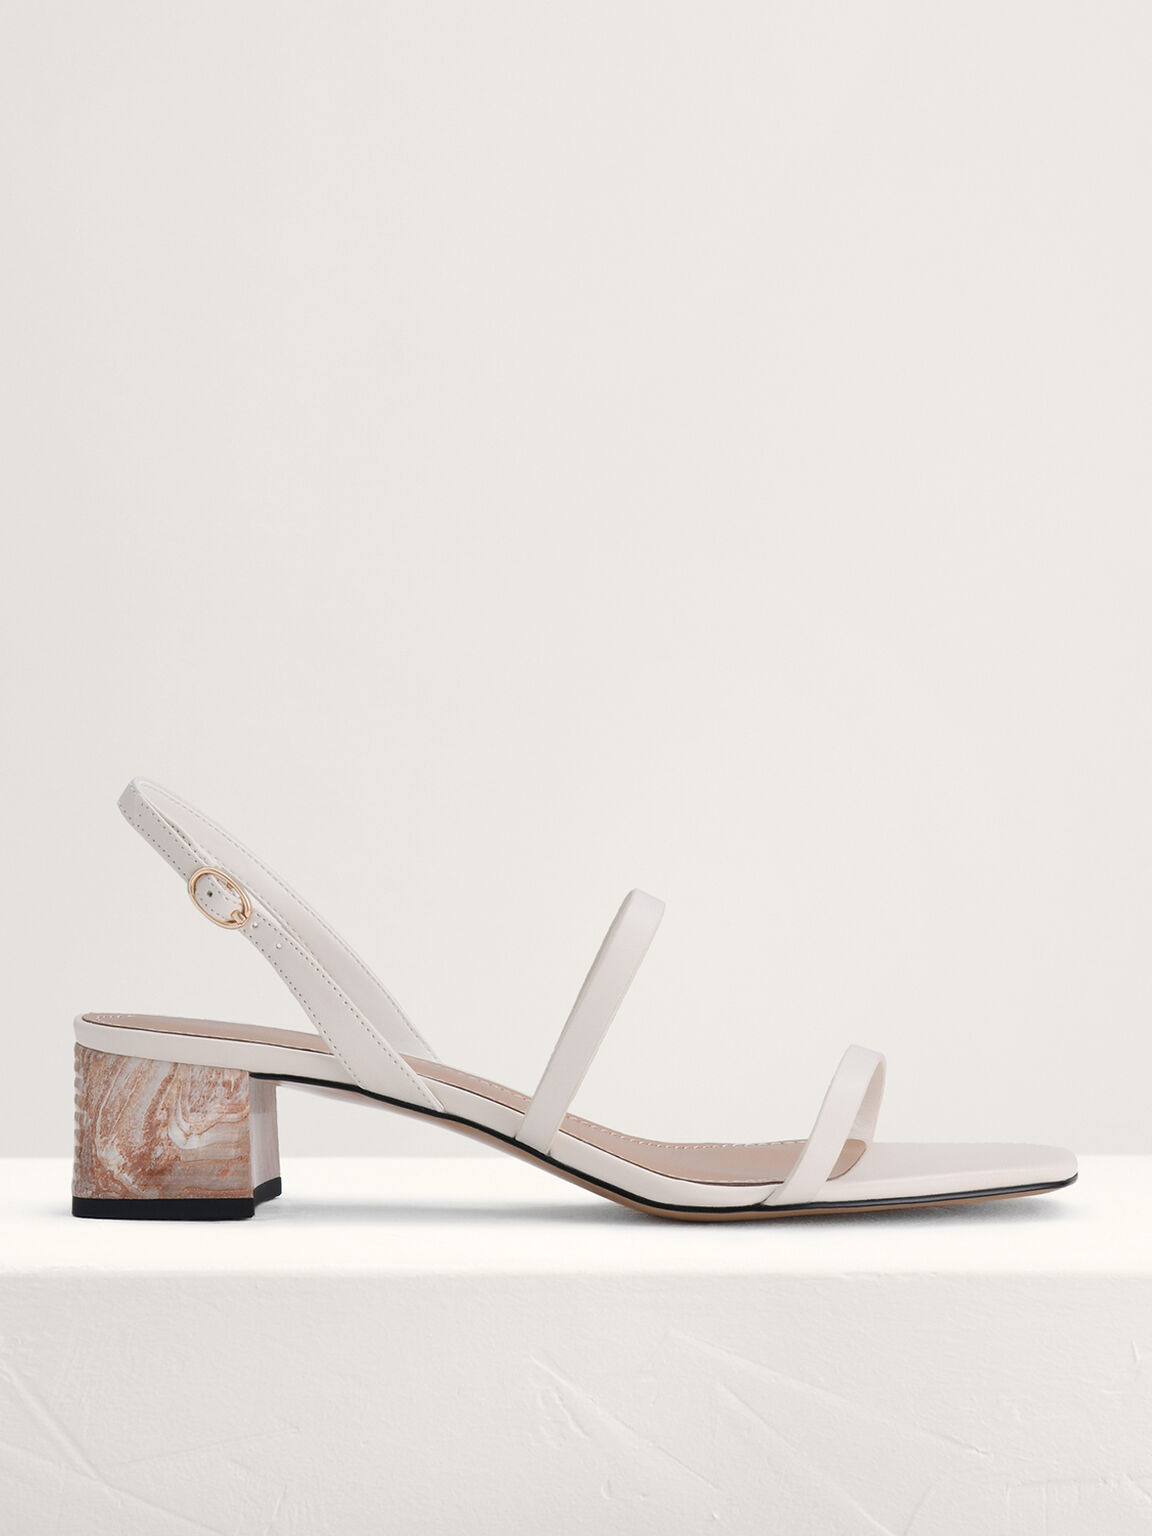 Square Toe Heeled Sandals, White, hi-res